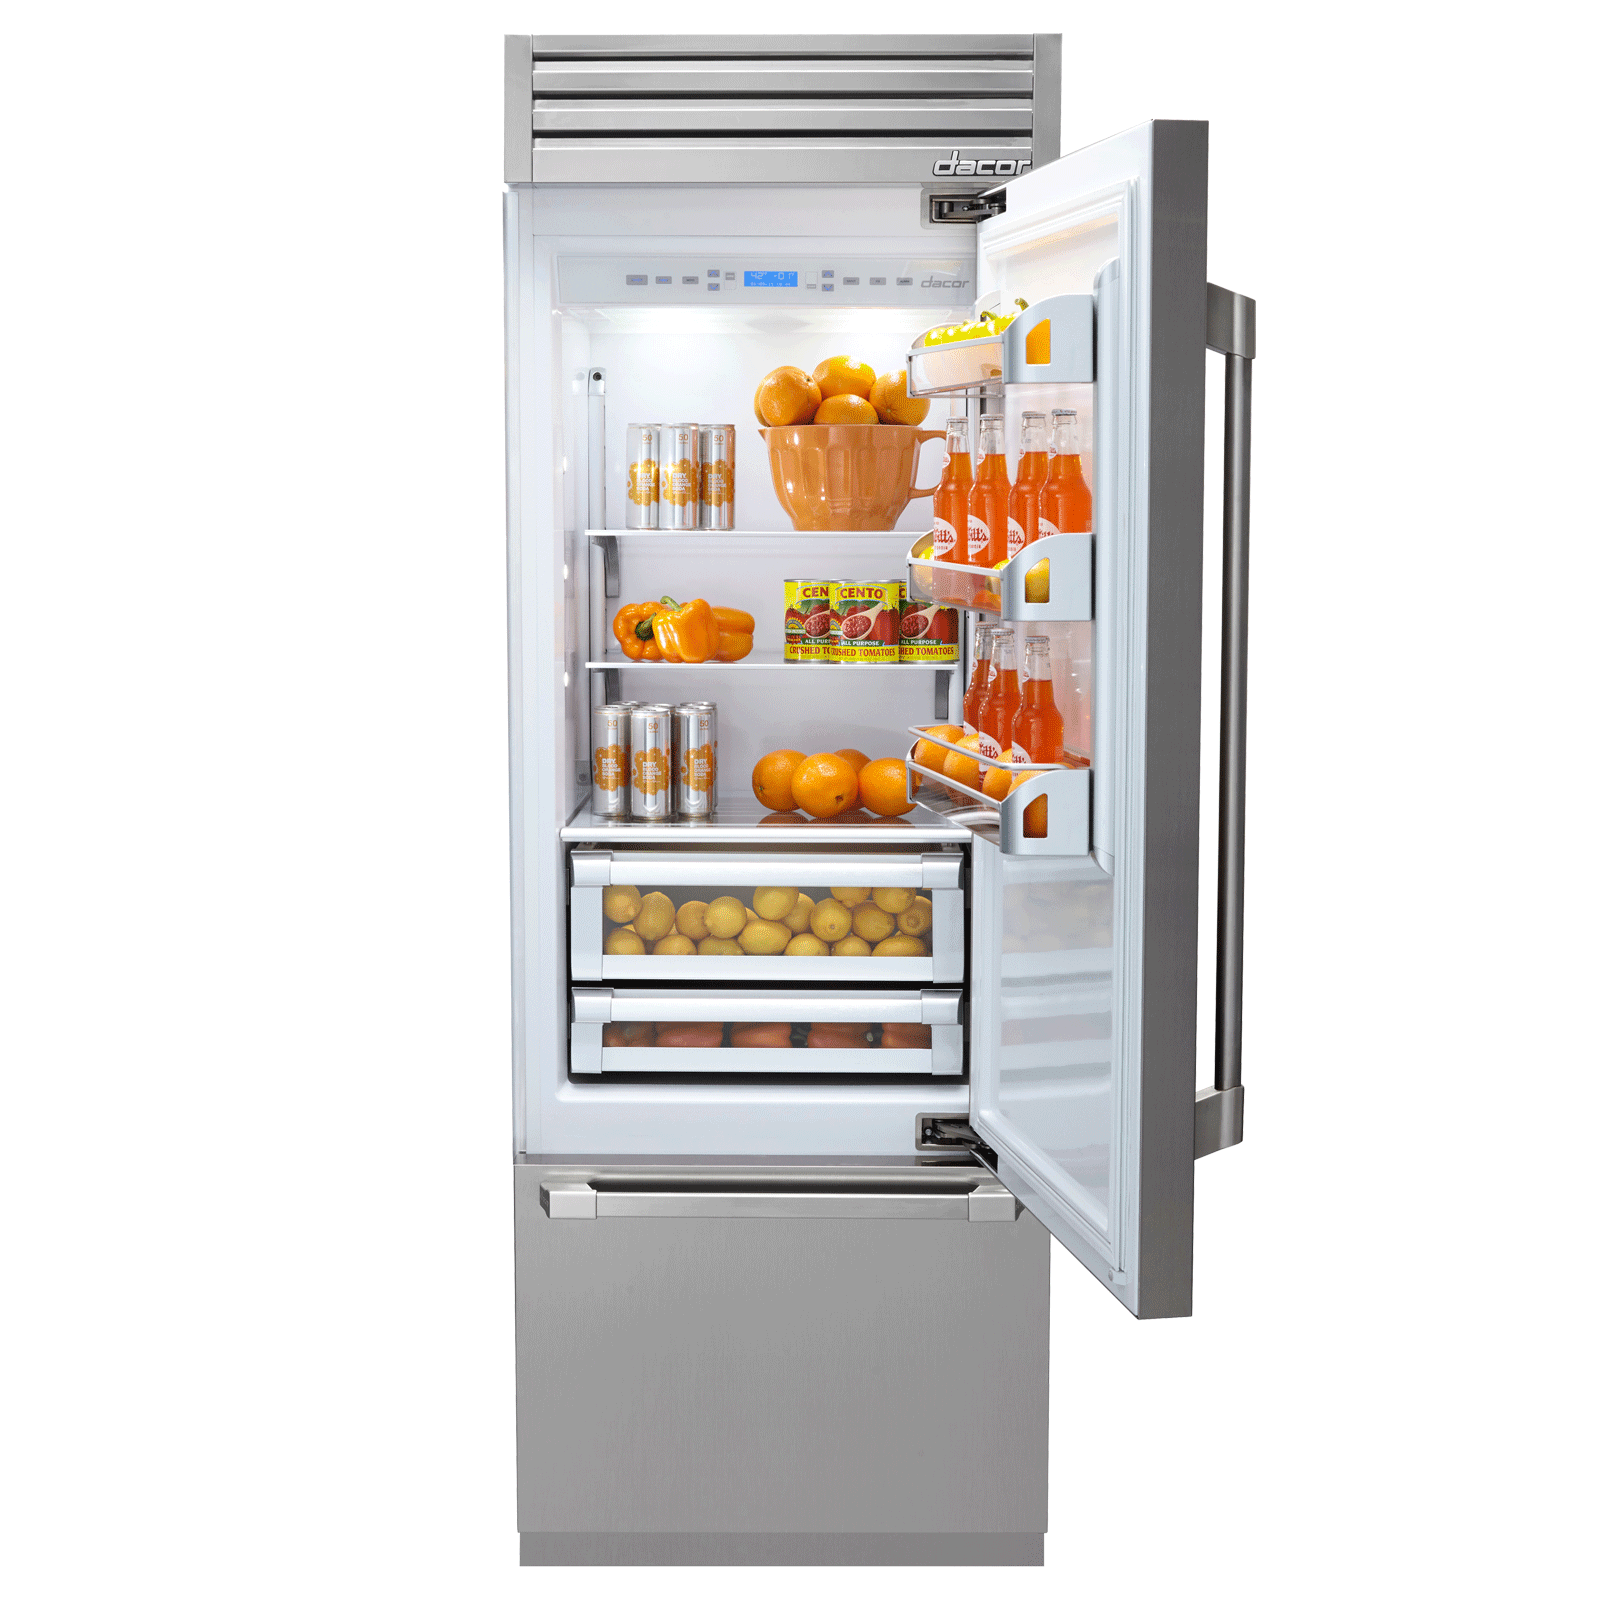 Best High End Refrigerators 2017 Who Makes The Best High